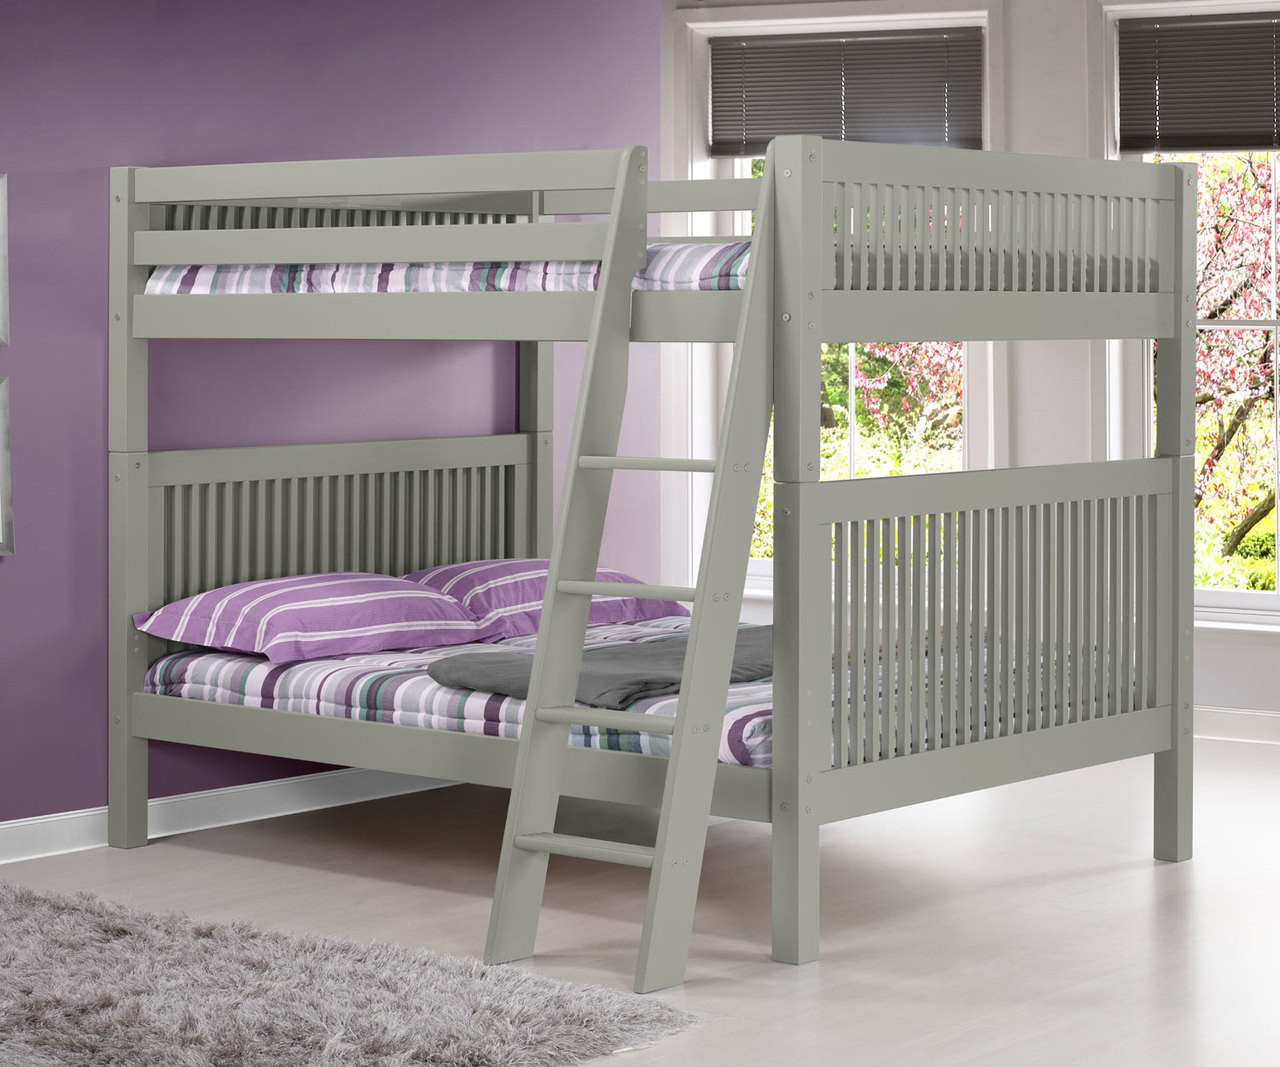 Camaflexi Full Over Full Bunk Bed In Grey E1614a Camaflexi Furniture Solid Wood Kids Furniture